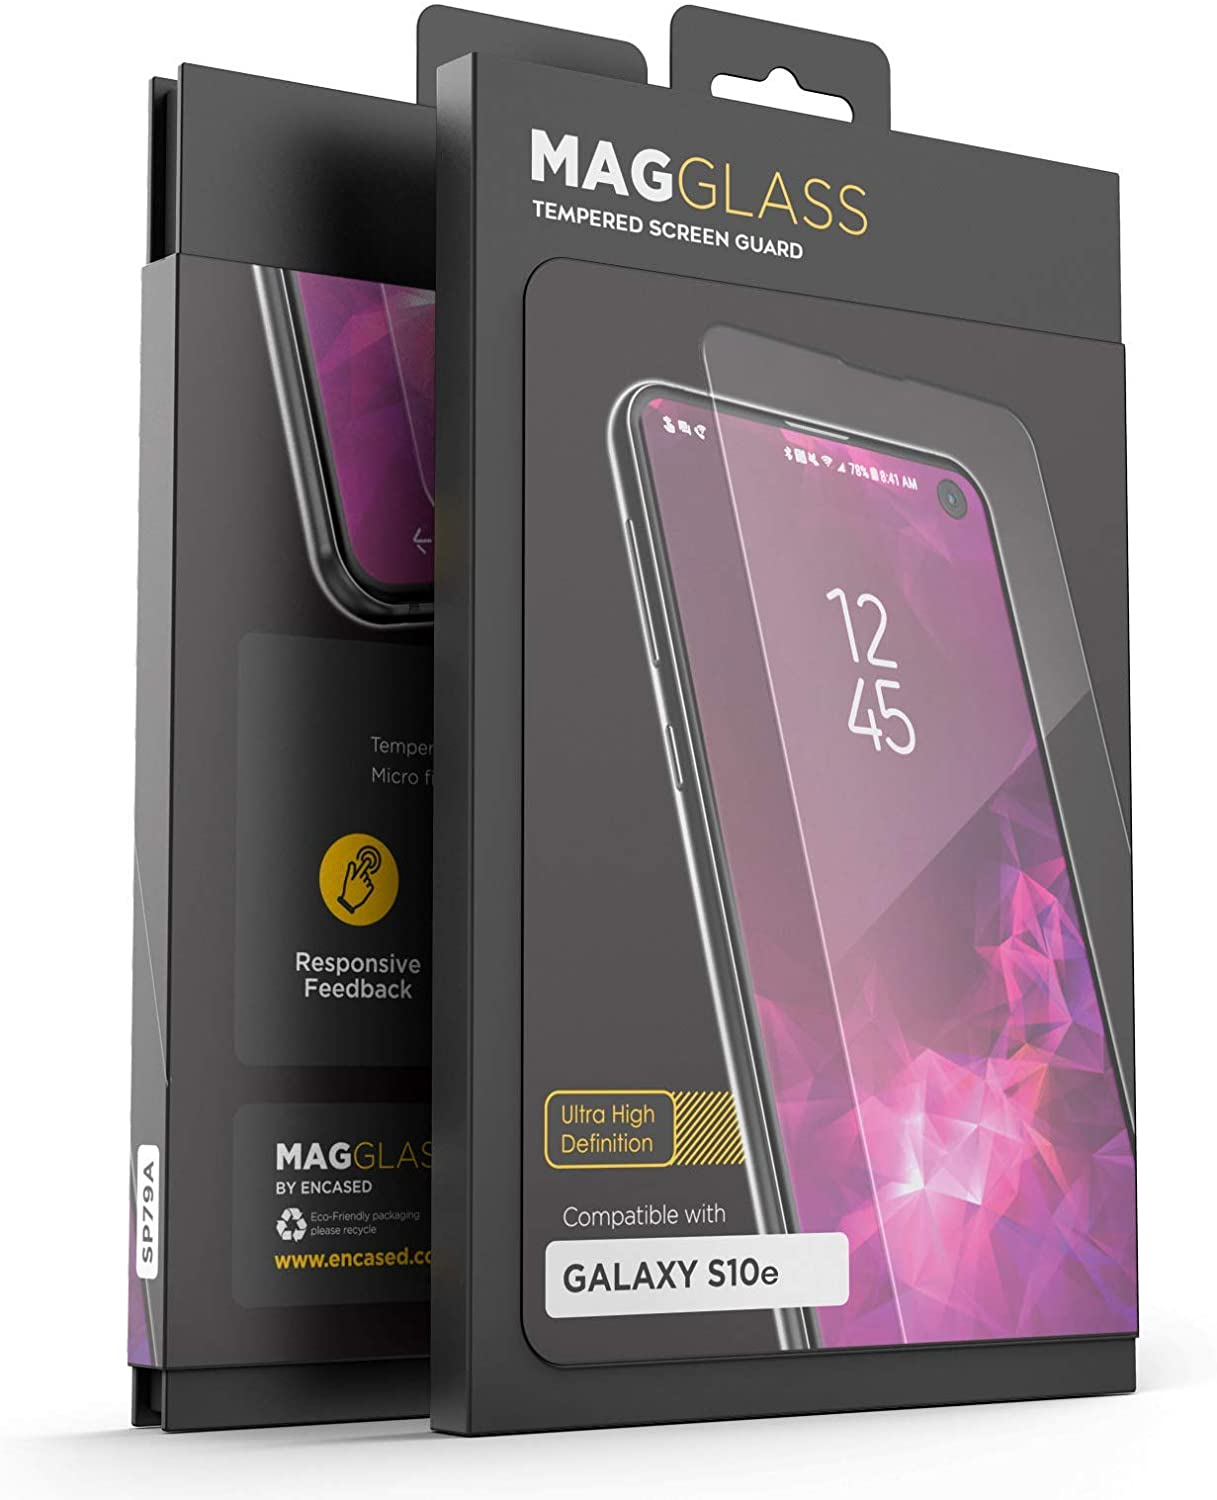 Magglass Samsung Galaxy S10e Tempered Glass Screen Protector - Anti Bubble UHD Ultra Clear Scratch Resistant Display Guard (Case Compatible) for Samsung Galaxy S10 E